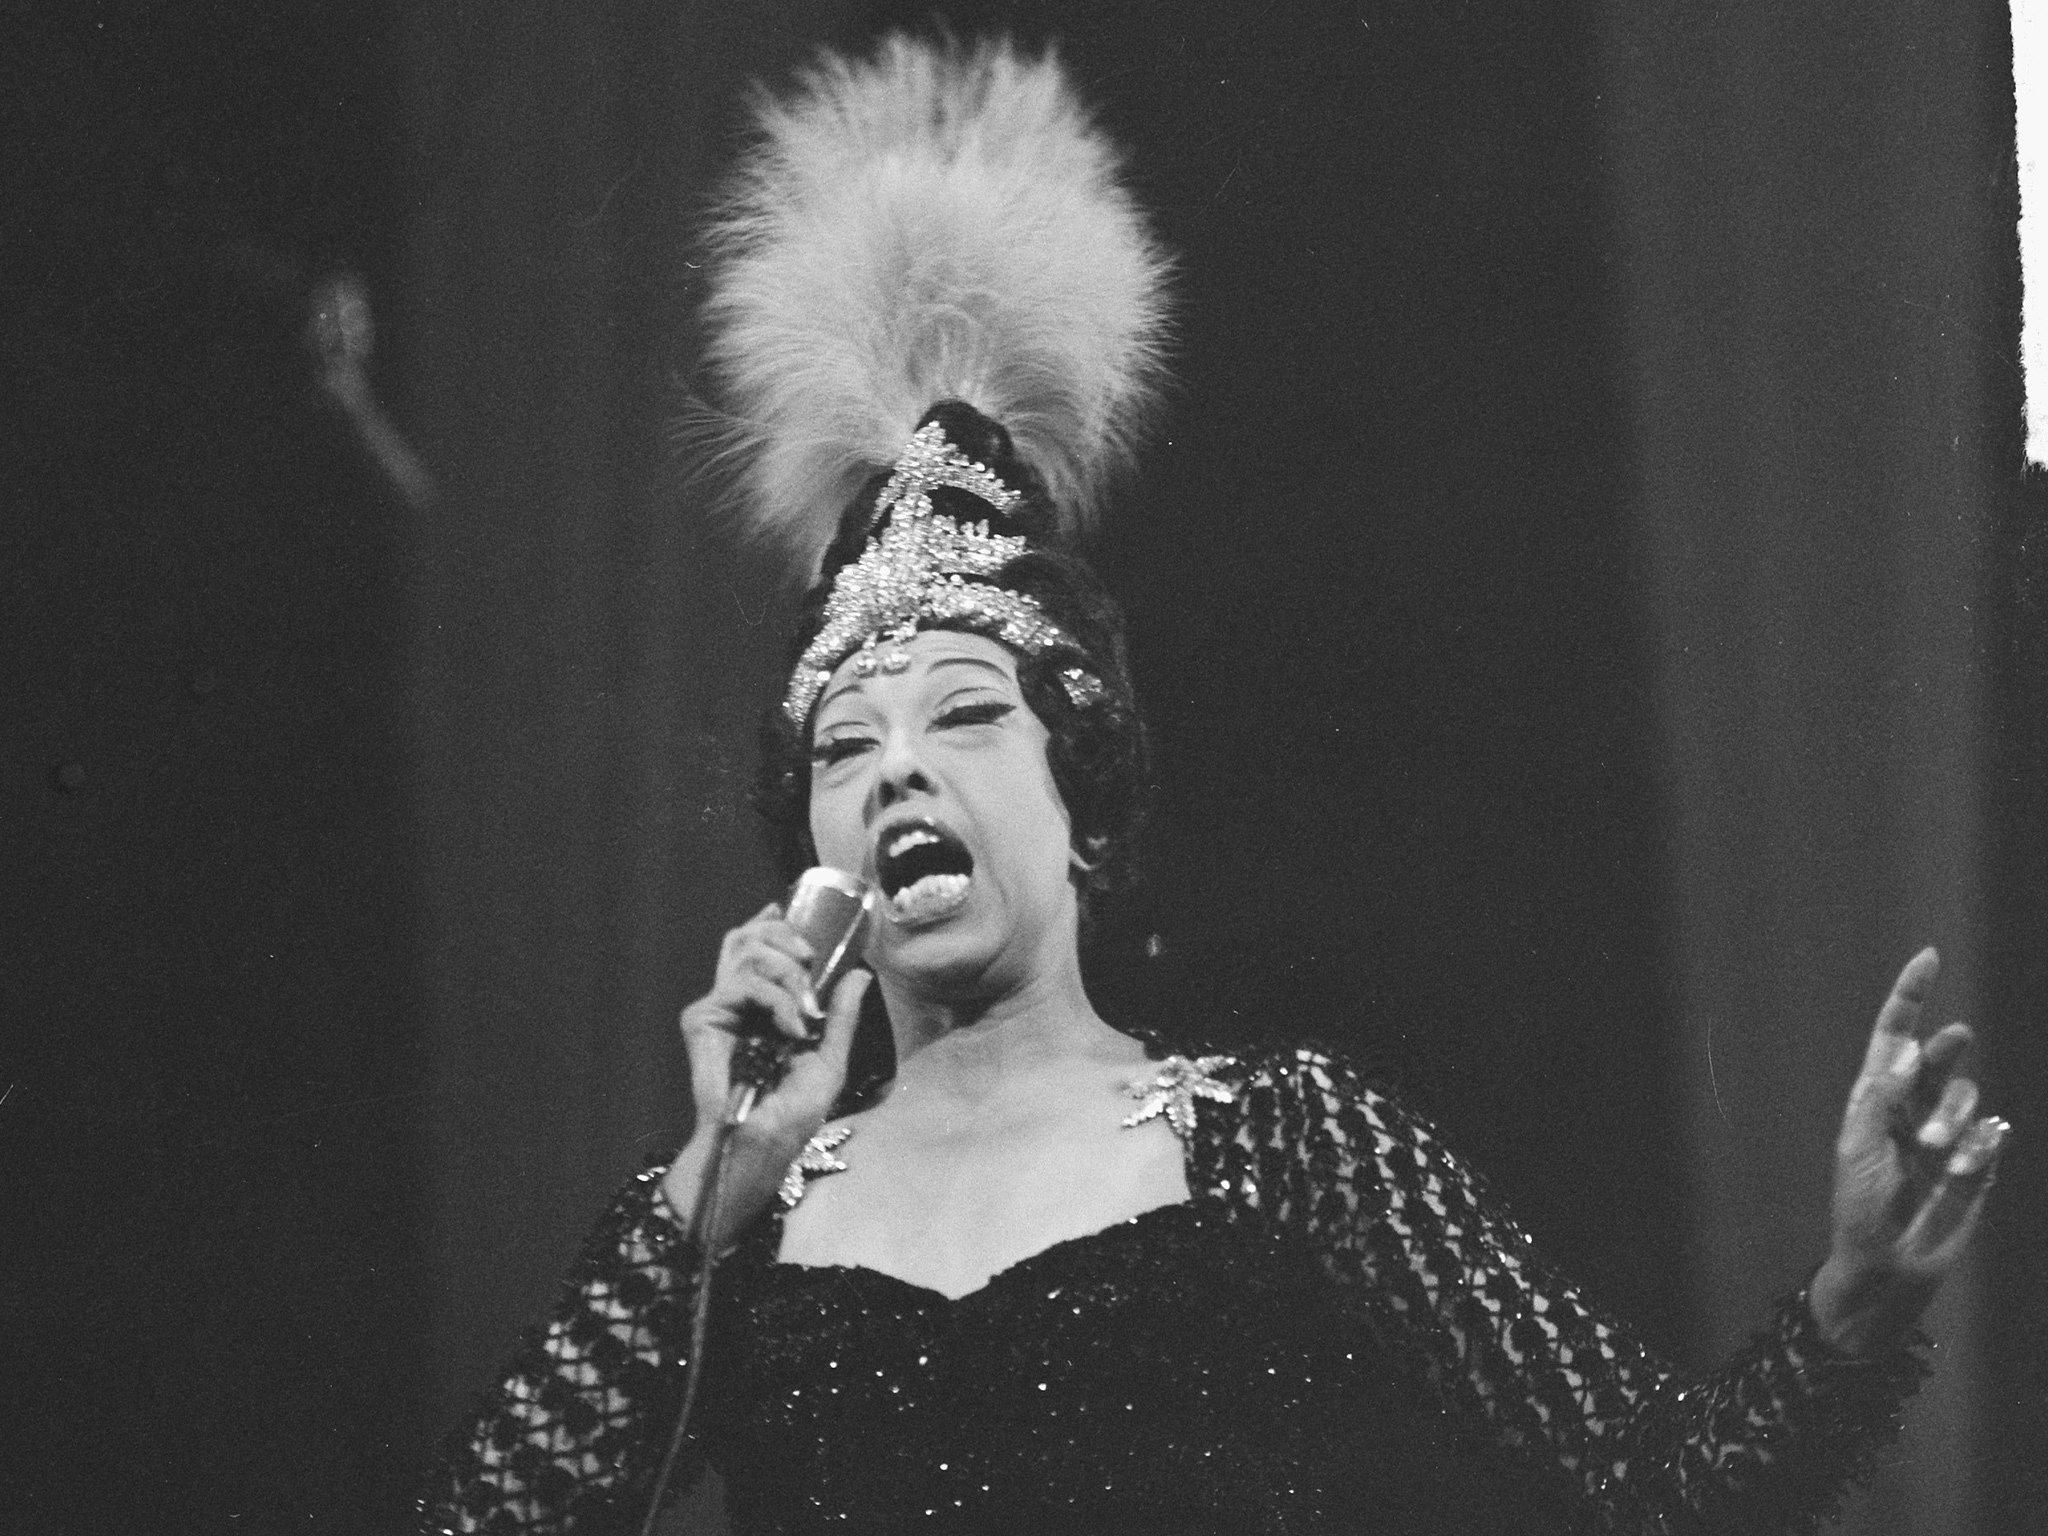 Josephine Baker on stage in 1967